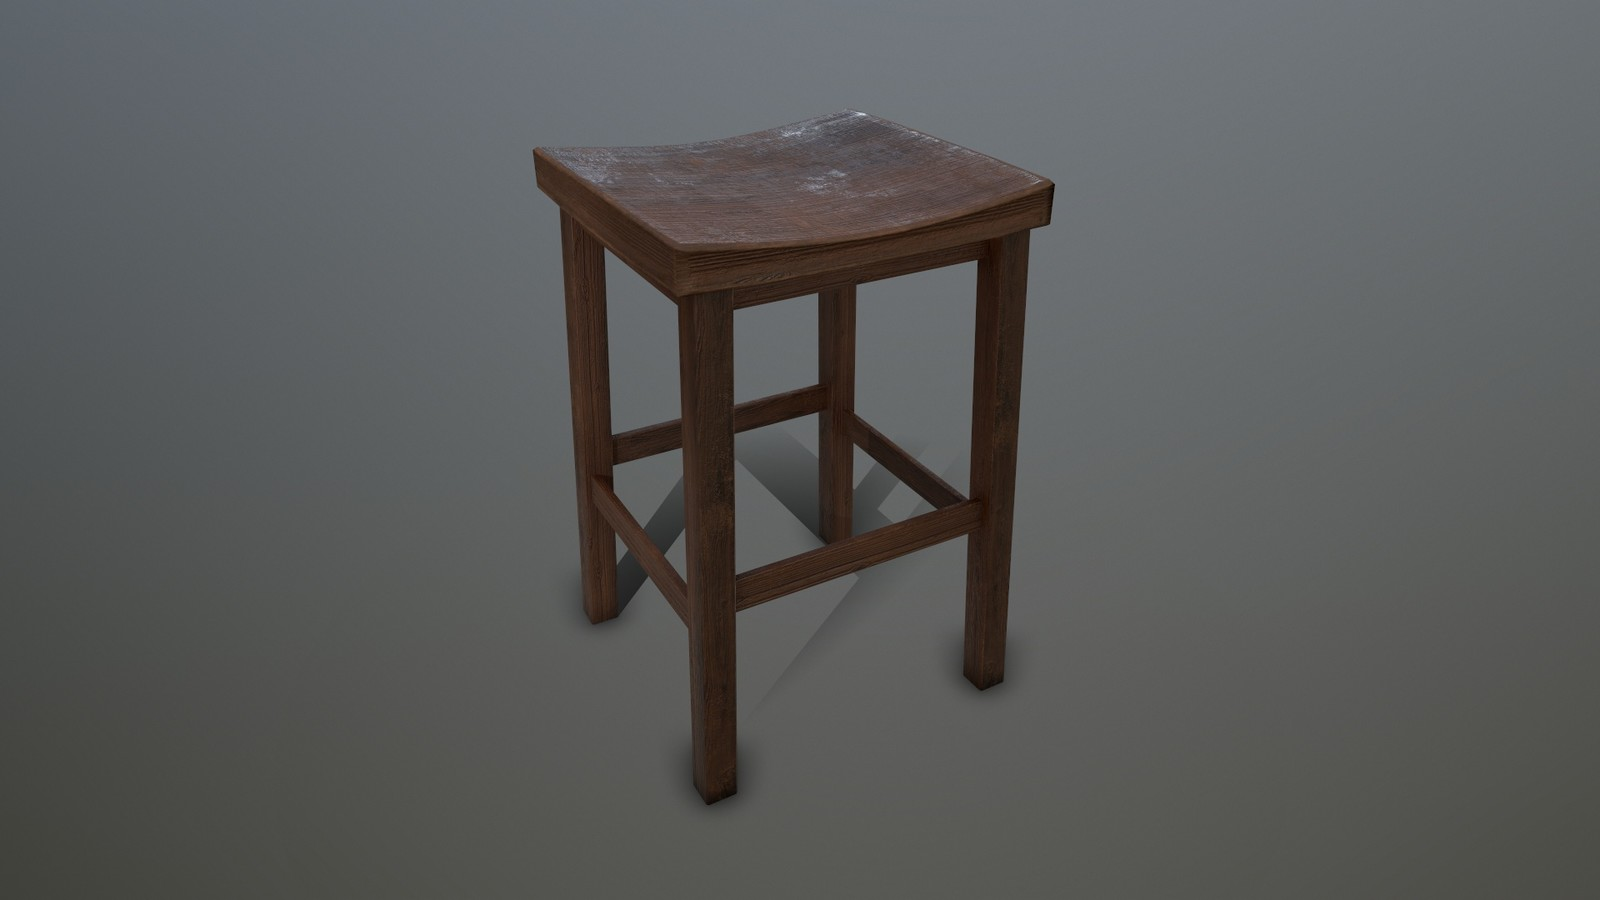 A simple stool prop I made